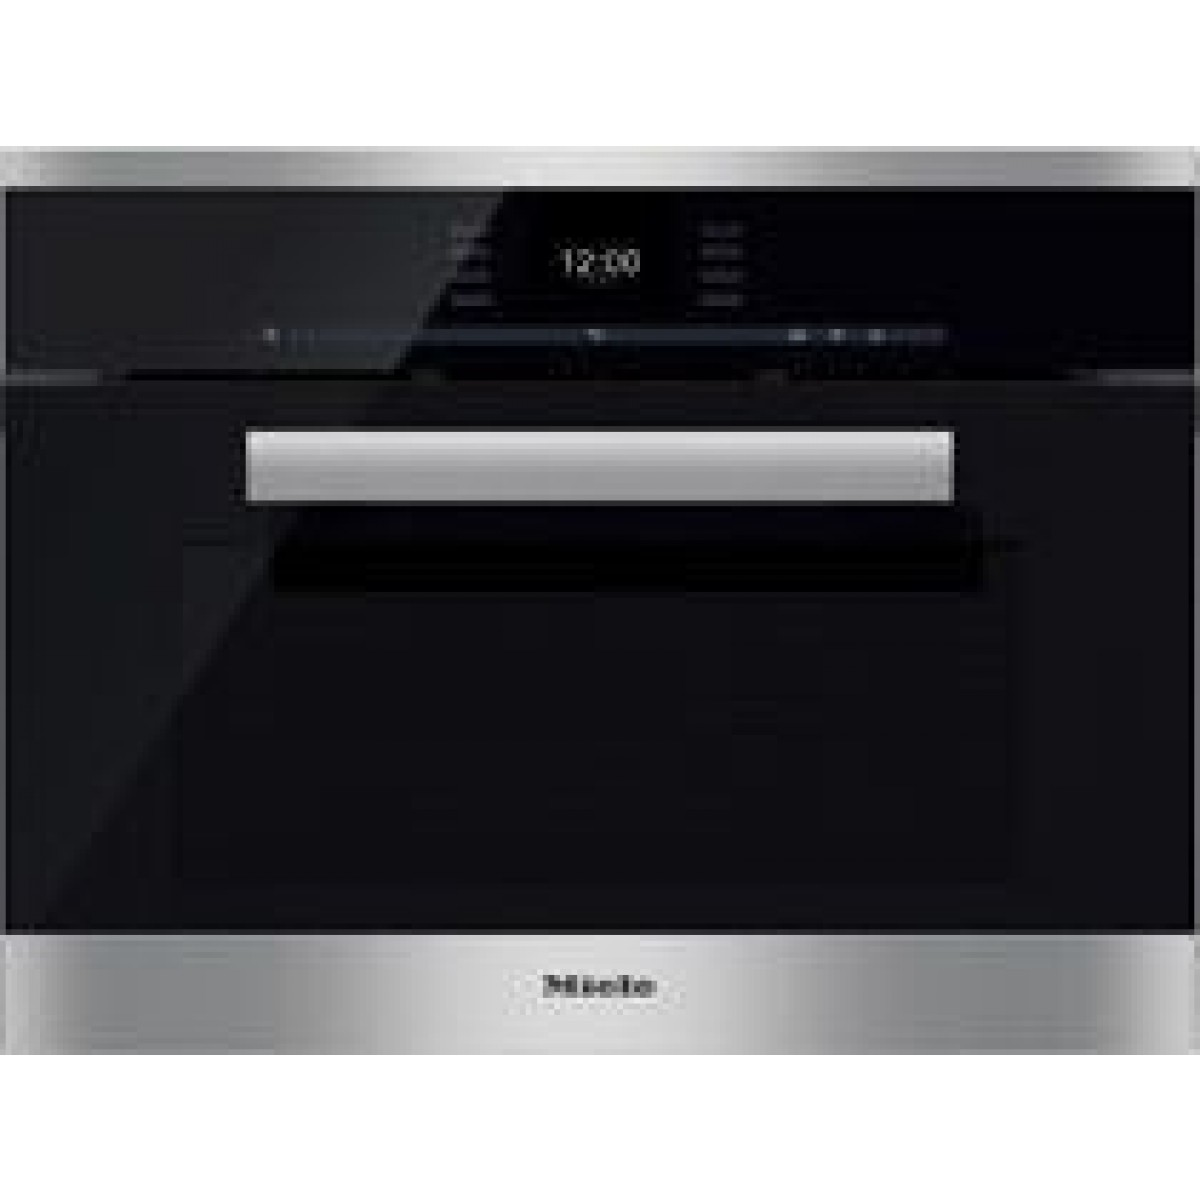 do not use miele 45cm steam combi oven pureline clean steel. Black Bedroom Furniture Sets. Home Design Ideas